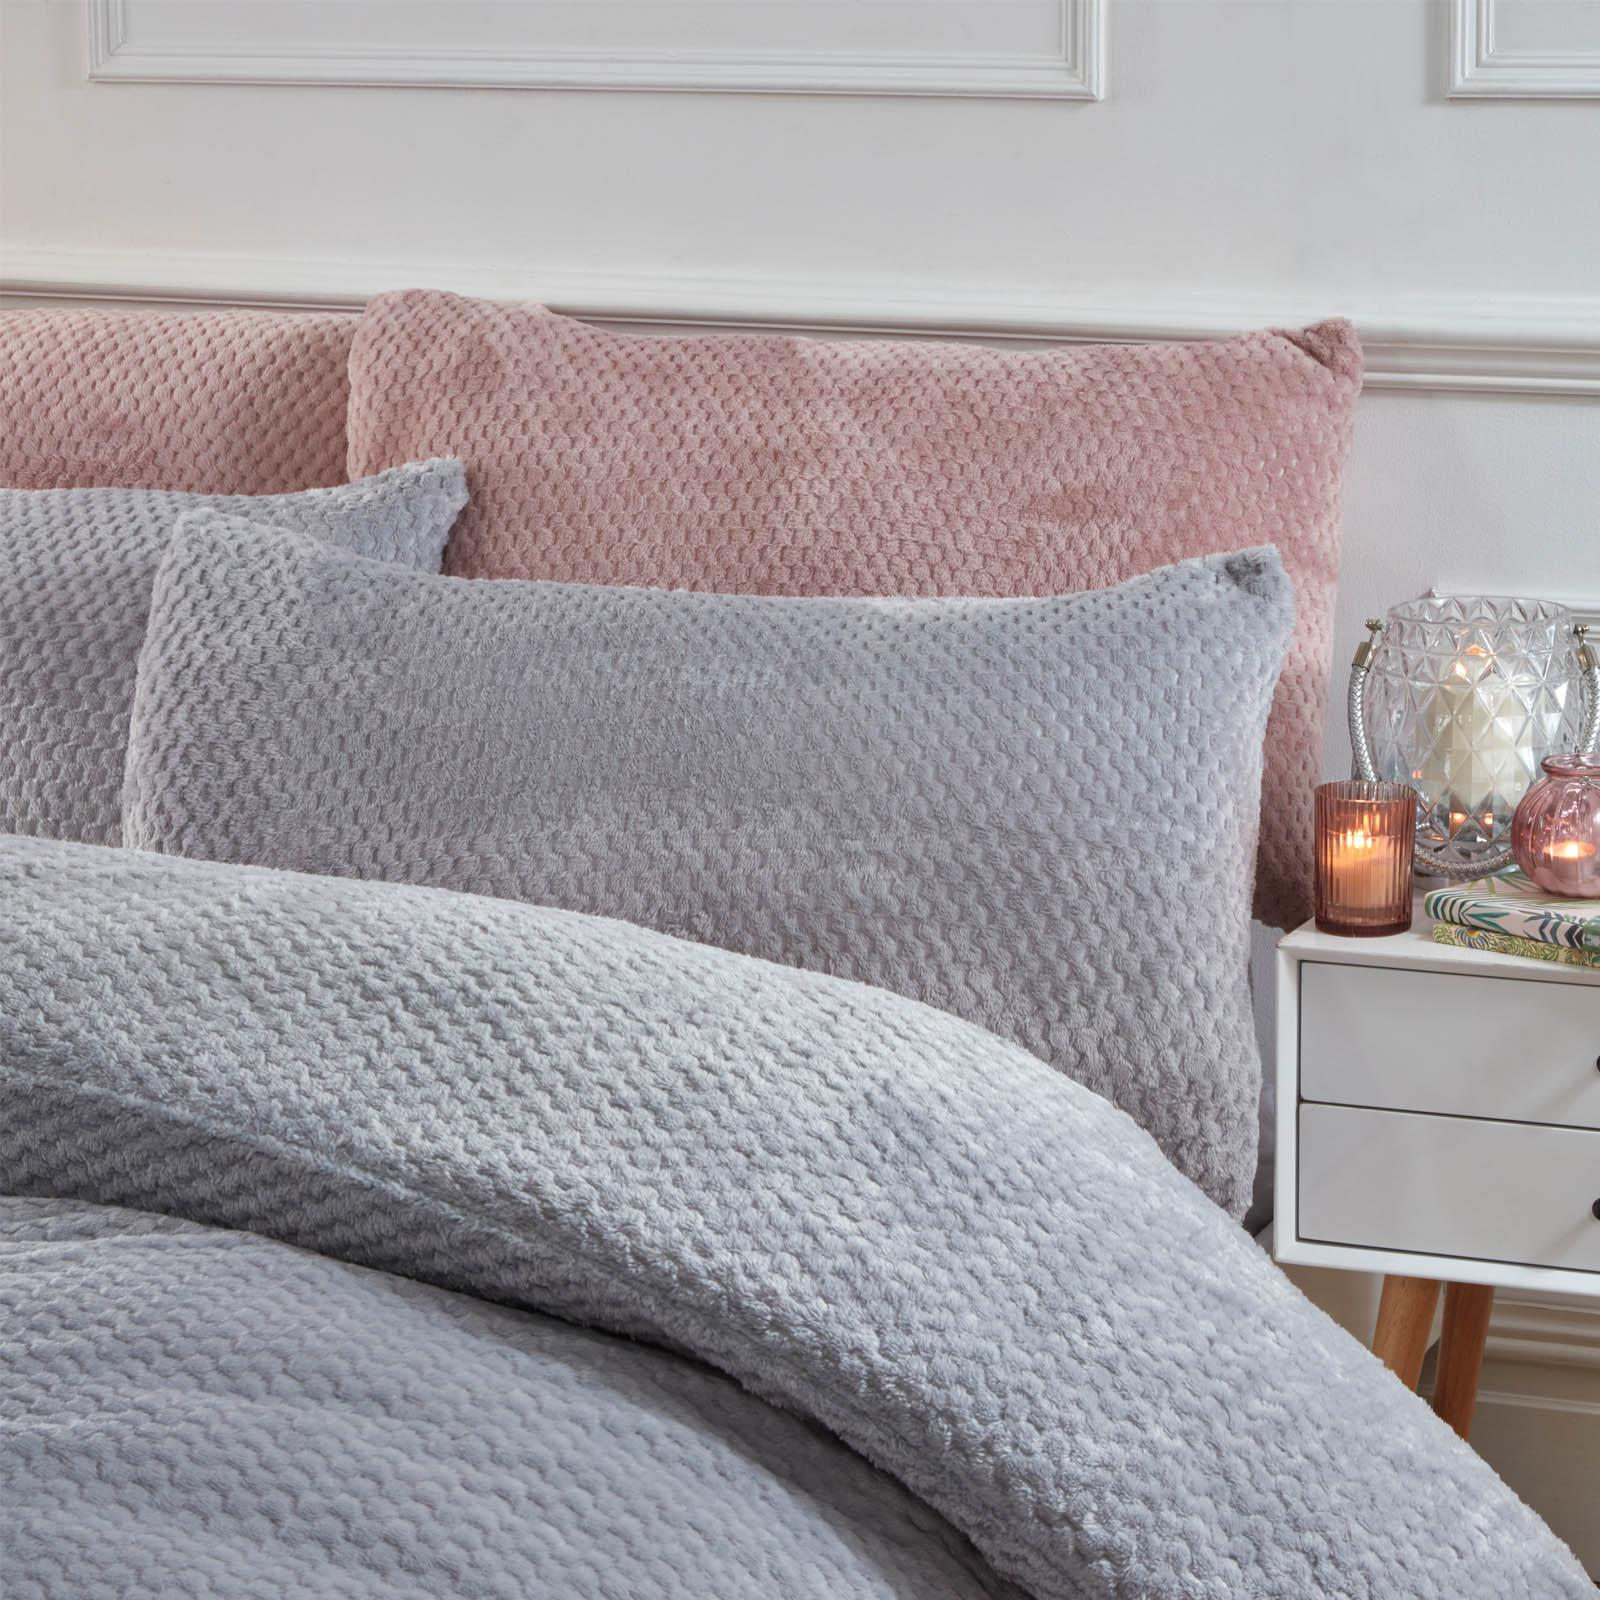 Brentfords-Warm-Waffle-Fleece-Duvet-Cover-with-Pillowcase-Soft-Cosy-Bedding-Set thumbnail 14